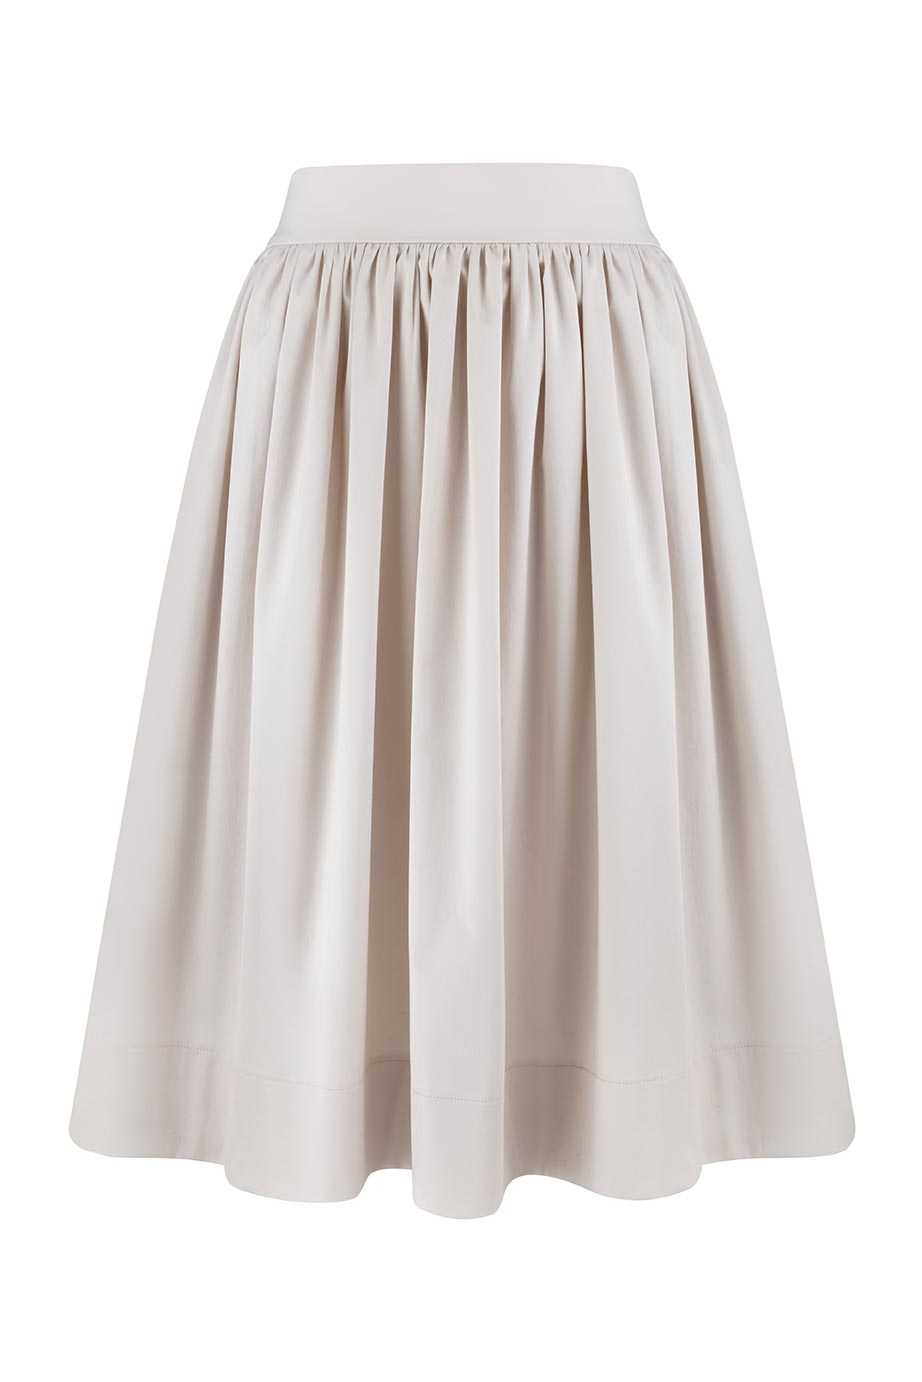 Karo Skirt by Monica Nera on curated-crowd.com